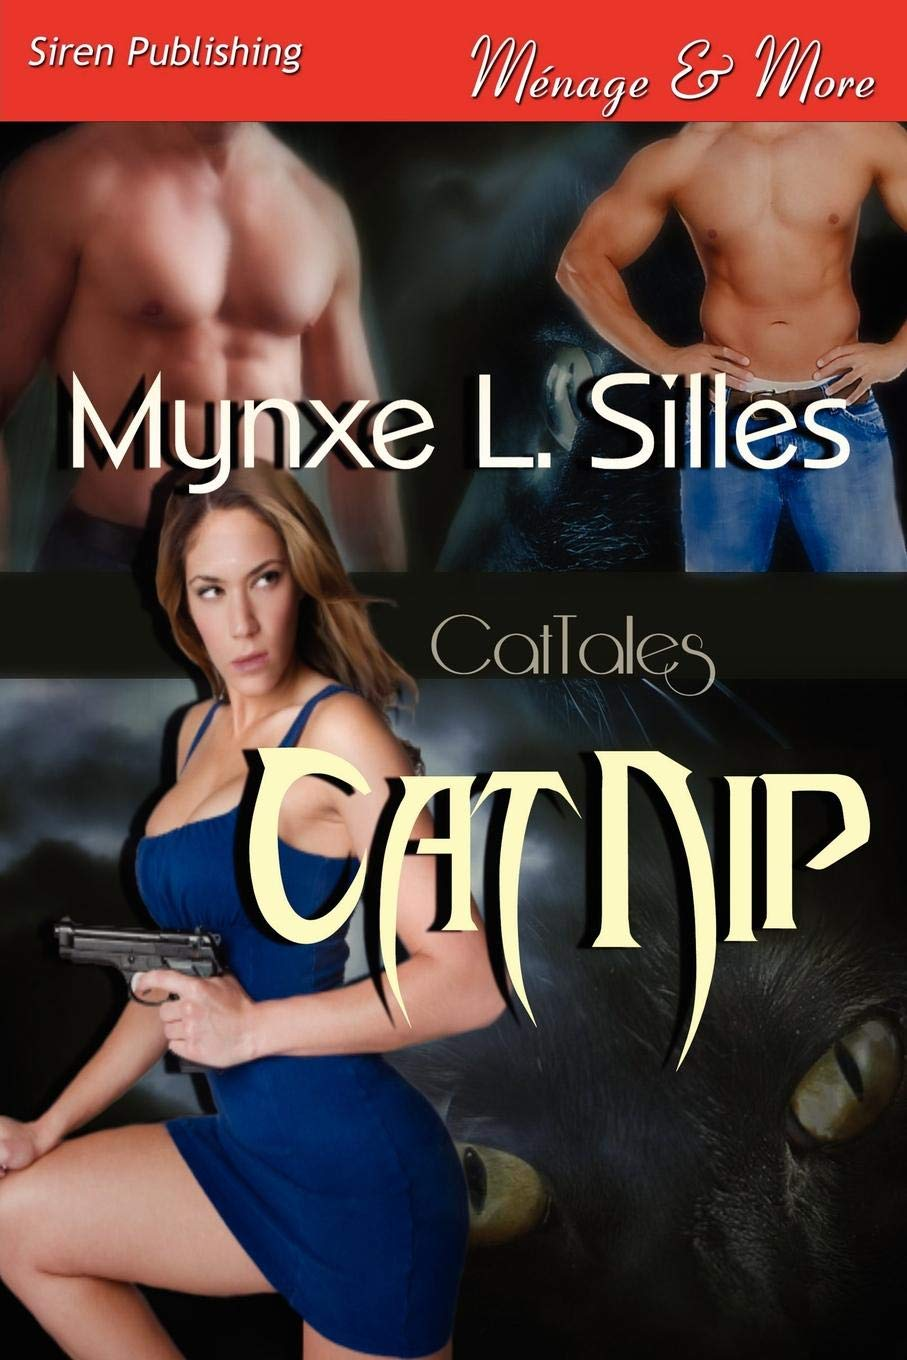 Amazon.com: Catnip [Cattales] (Siren Publishing Menage and ...